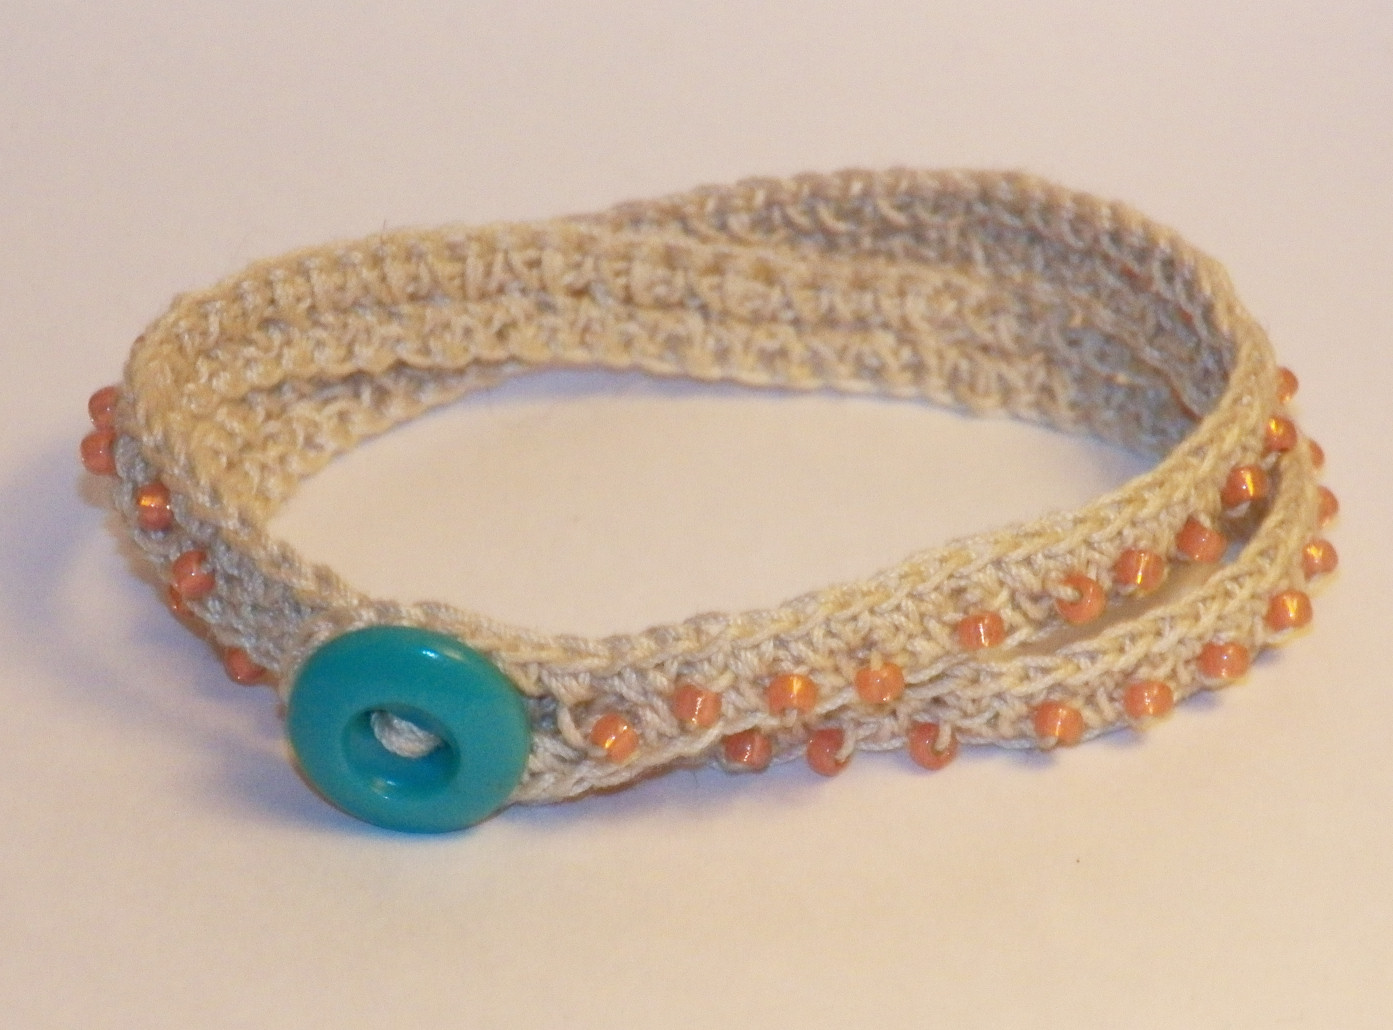 Crochet Patterns With Beads : Dont Eat the Paste: Crochet Beaded Wrap Bracelet Pattern